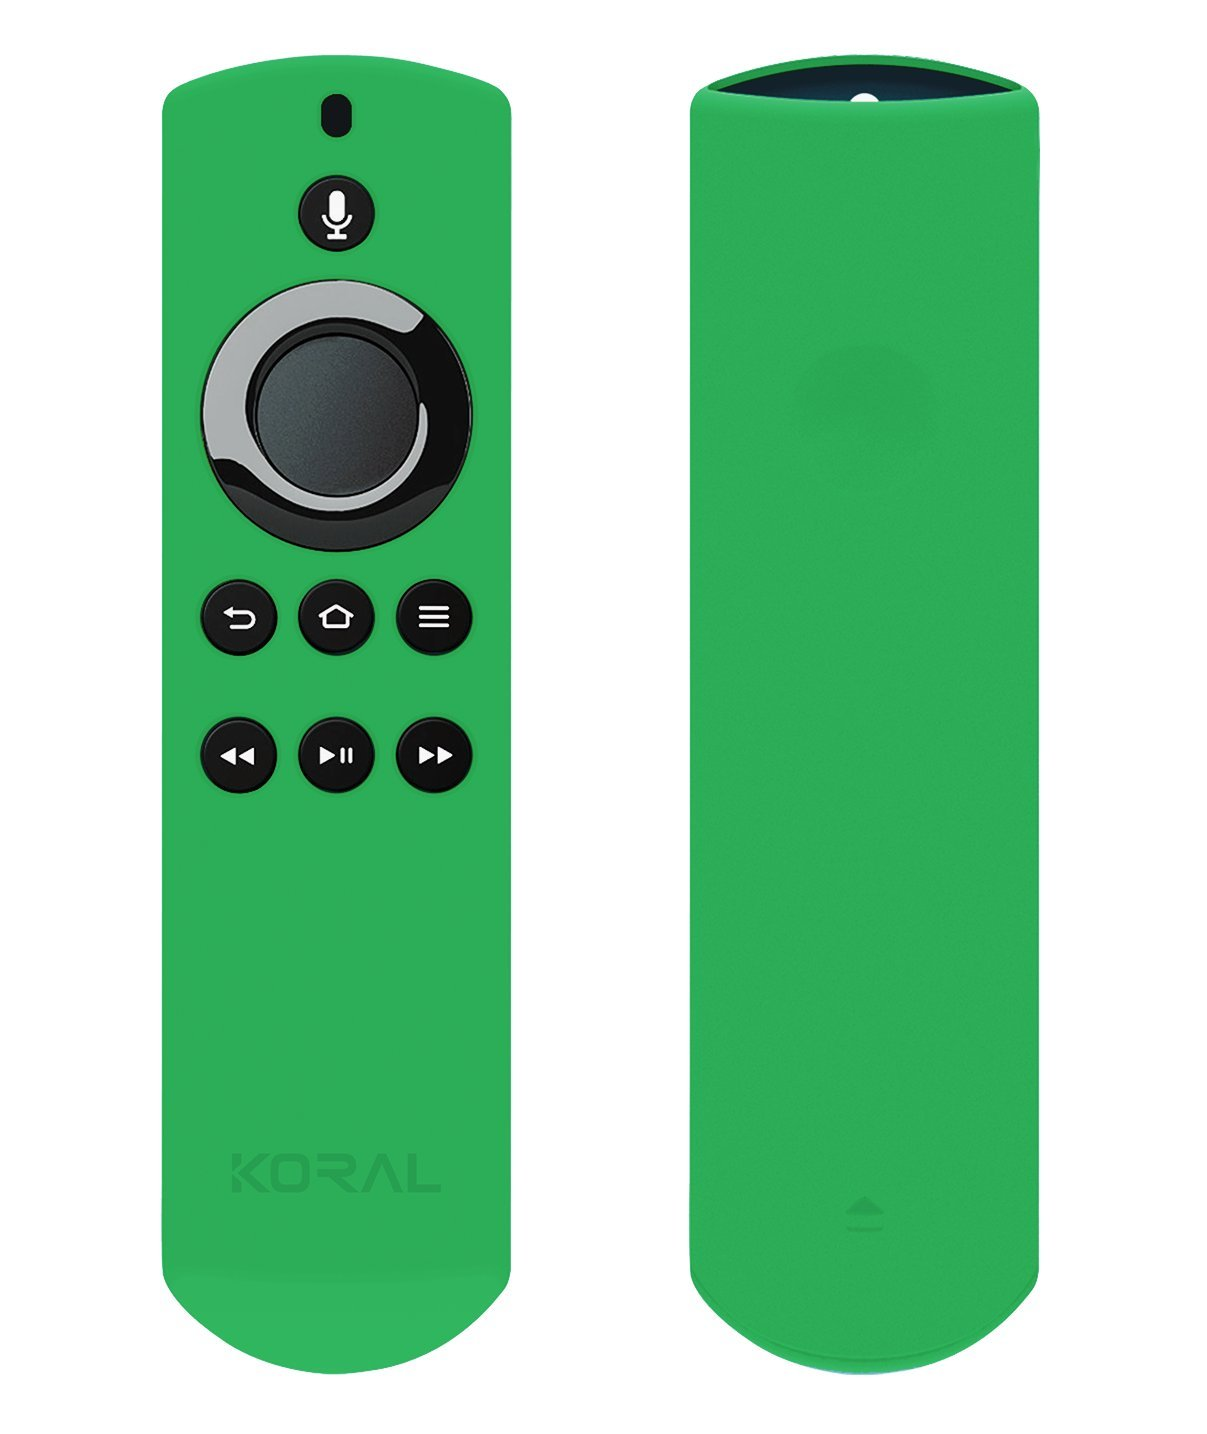 Koral Case for Alexa Voice Remote for Fire TV and Fire TV Stick - Glow Green